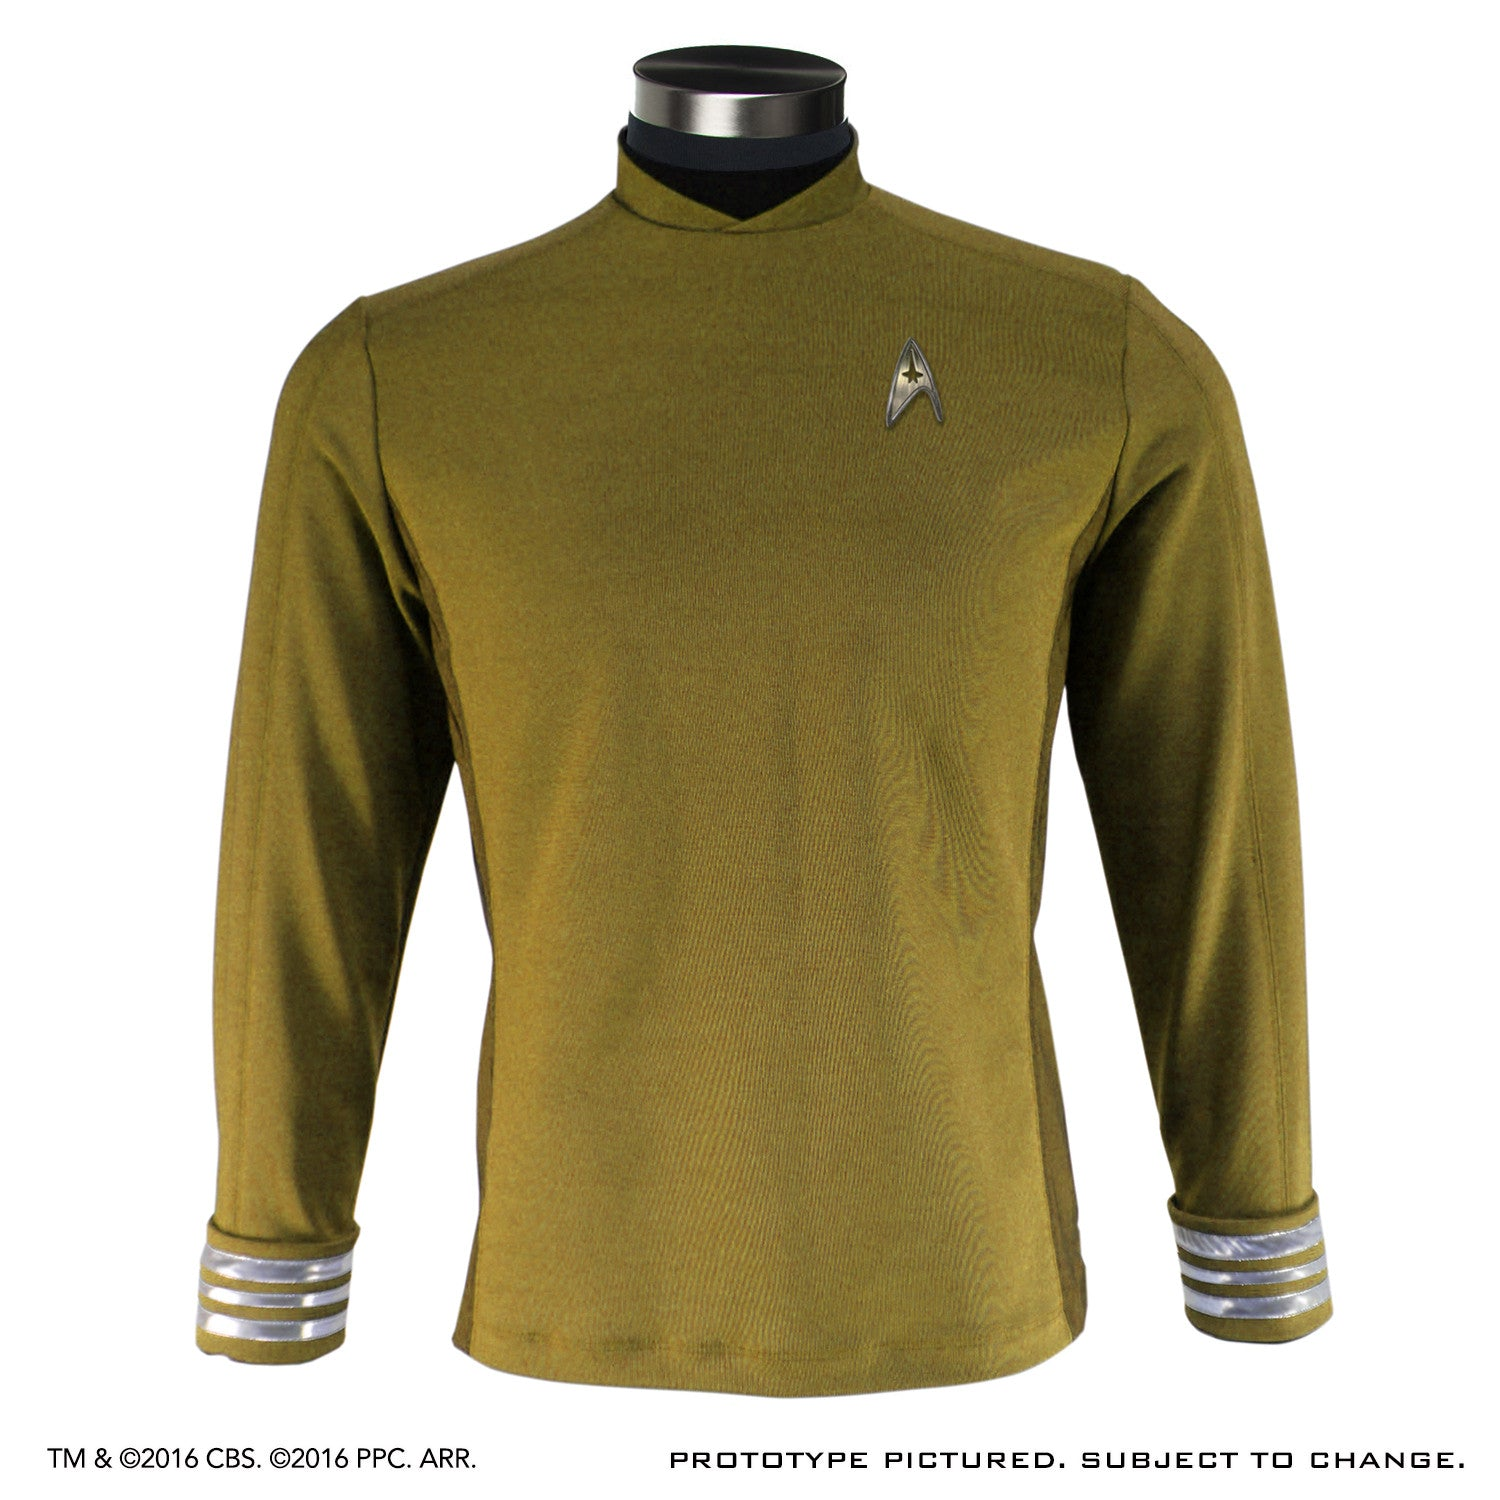 425e71a1a Out of Stock STAR TREK™: BEYOND - Men's Starfleet Uniform Tunic - Standard  Line